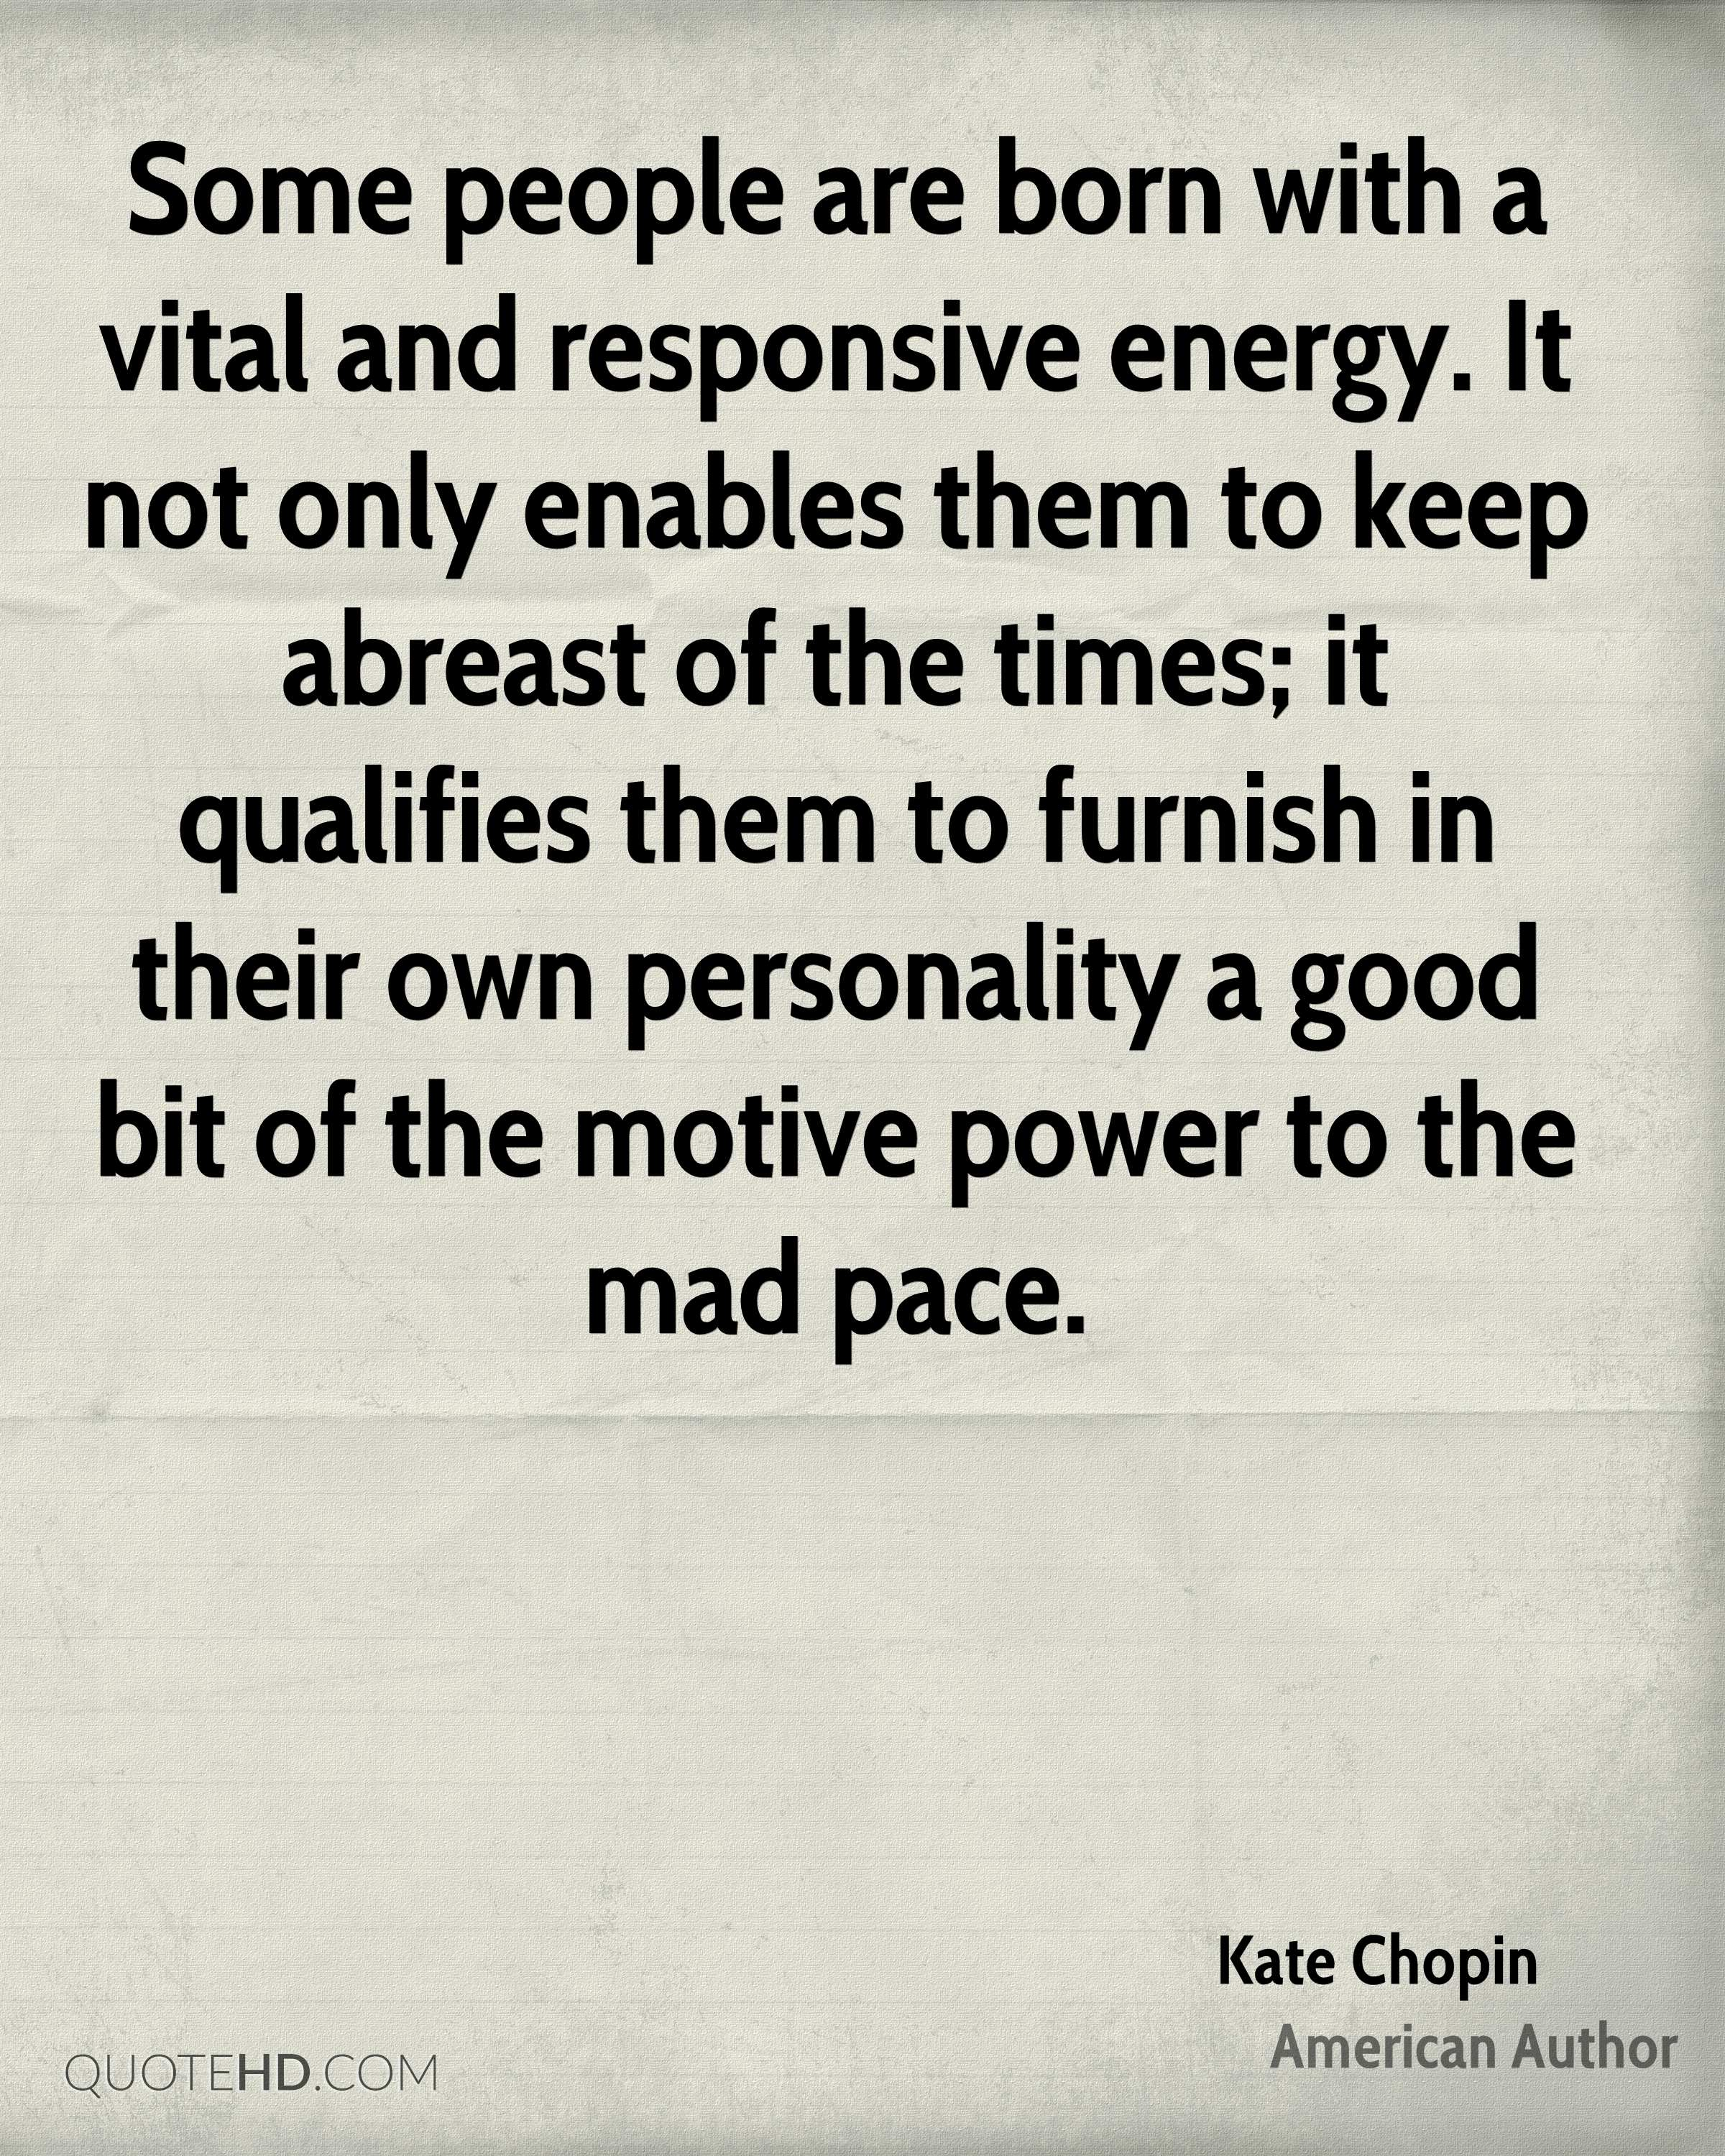 Some people are born with a vital and responsive energy. It not only enables them to keep abreast of the times; it qualifies them to furnish in their own personality a good bit of the motive power to the mad pace.